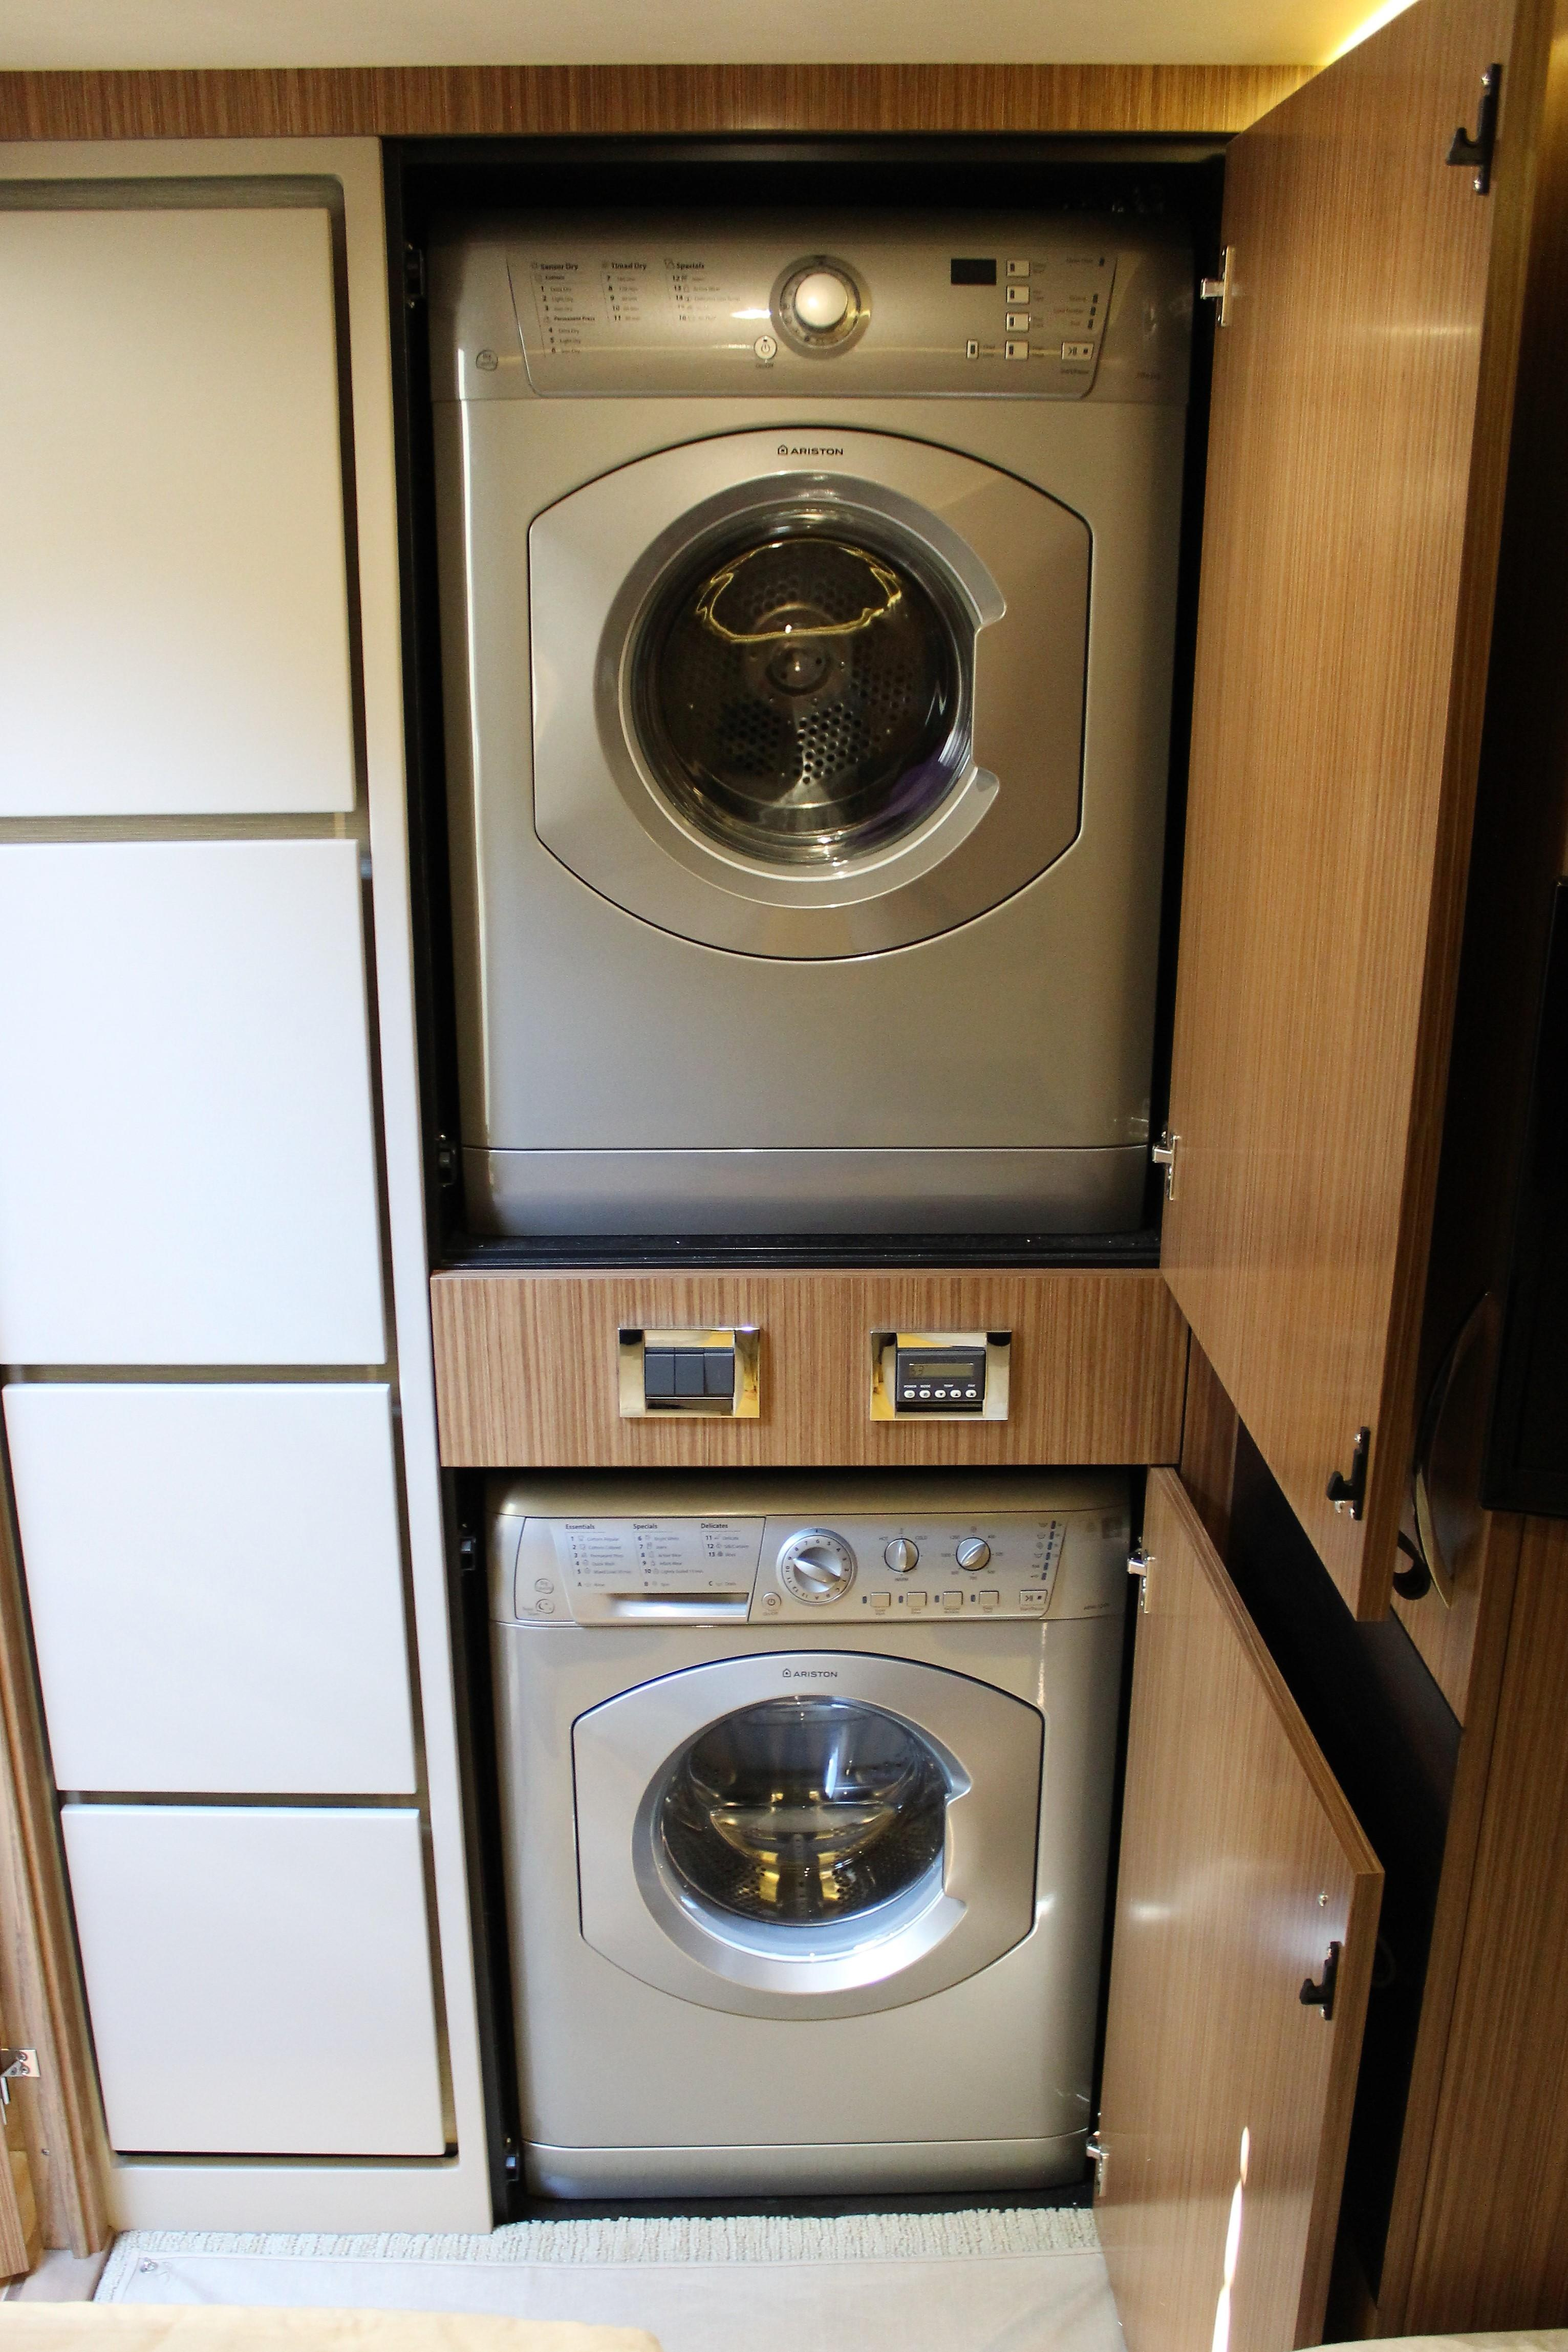 Ariston washer and dryer units